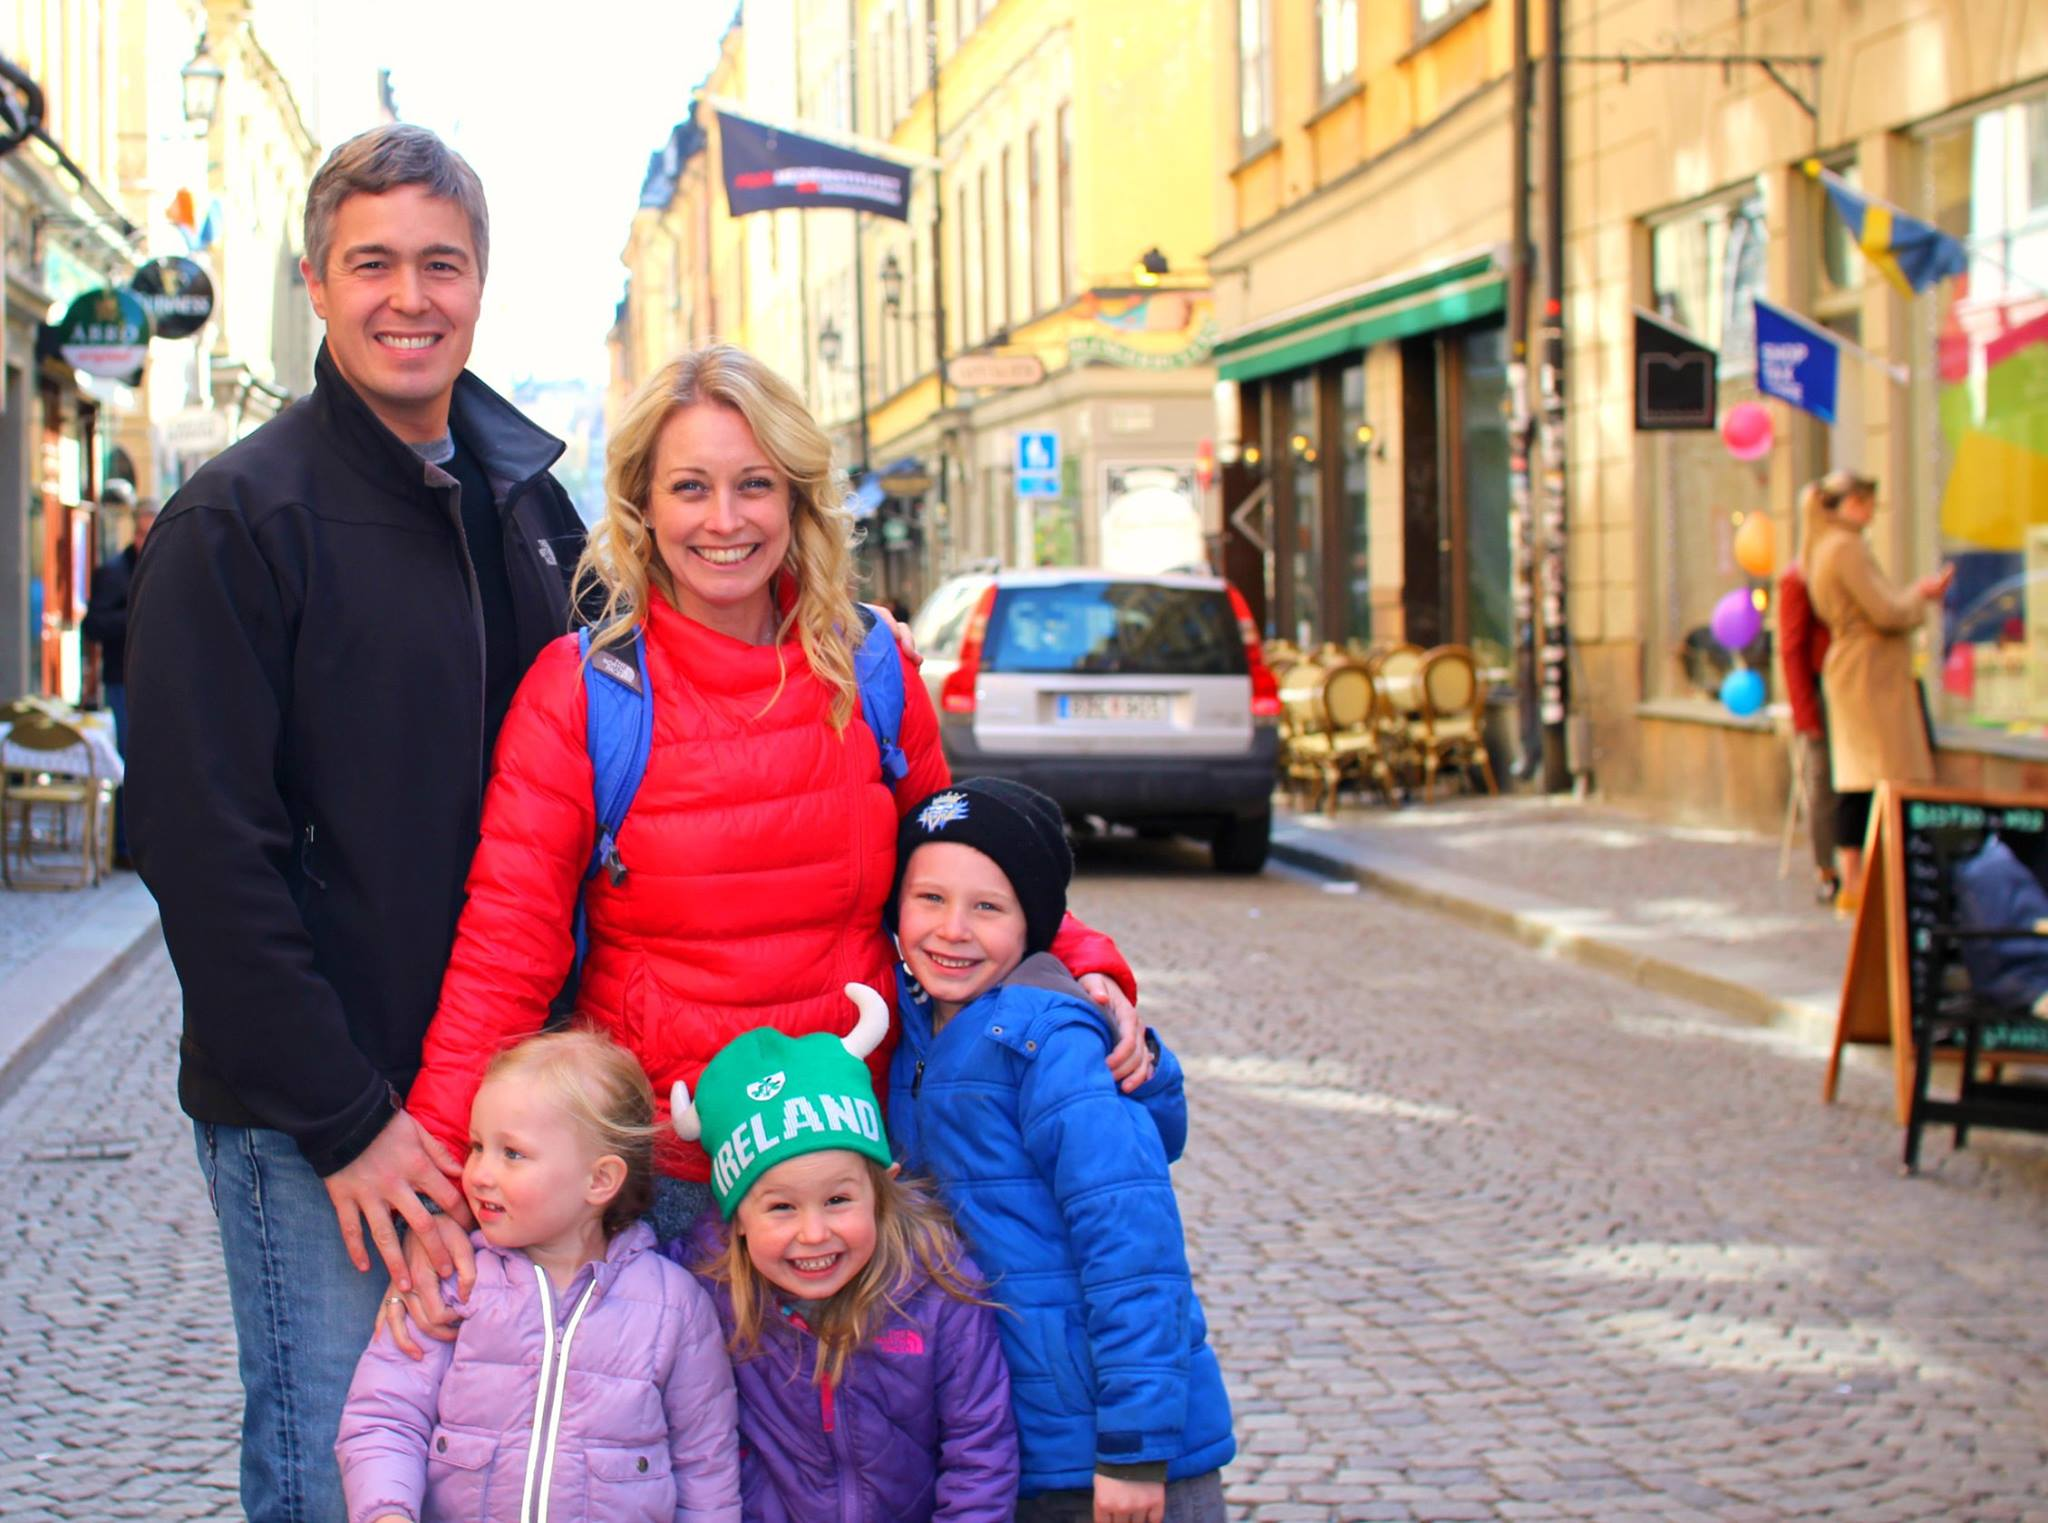 Exploring the streets of Gamla Stan in Stockholm